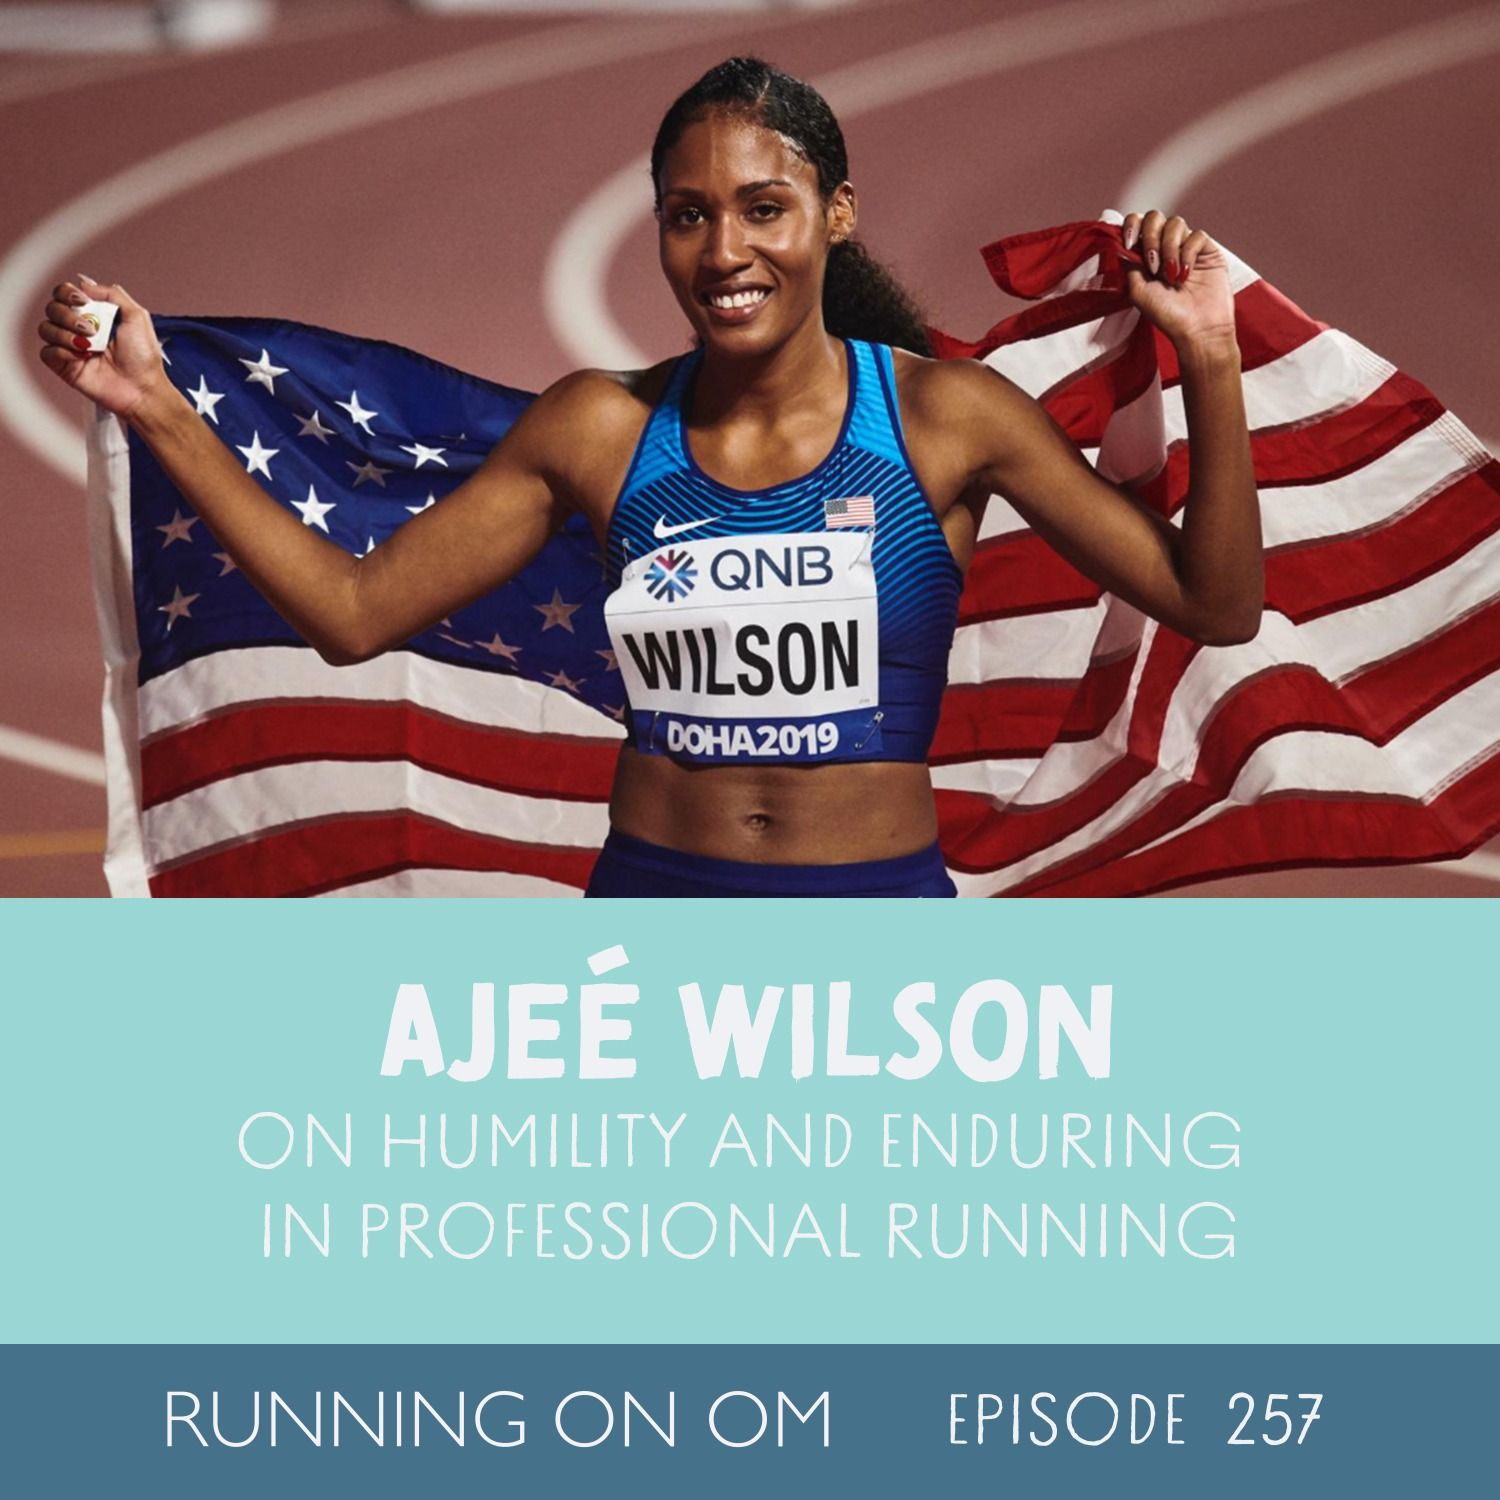 Ajeé Wilson on Humility and Enduring in Professional Running